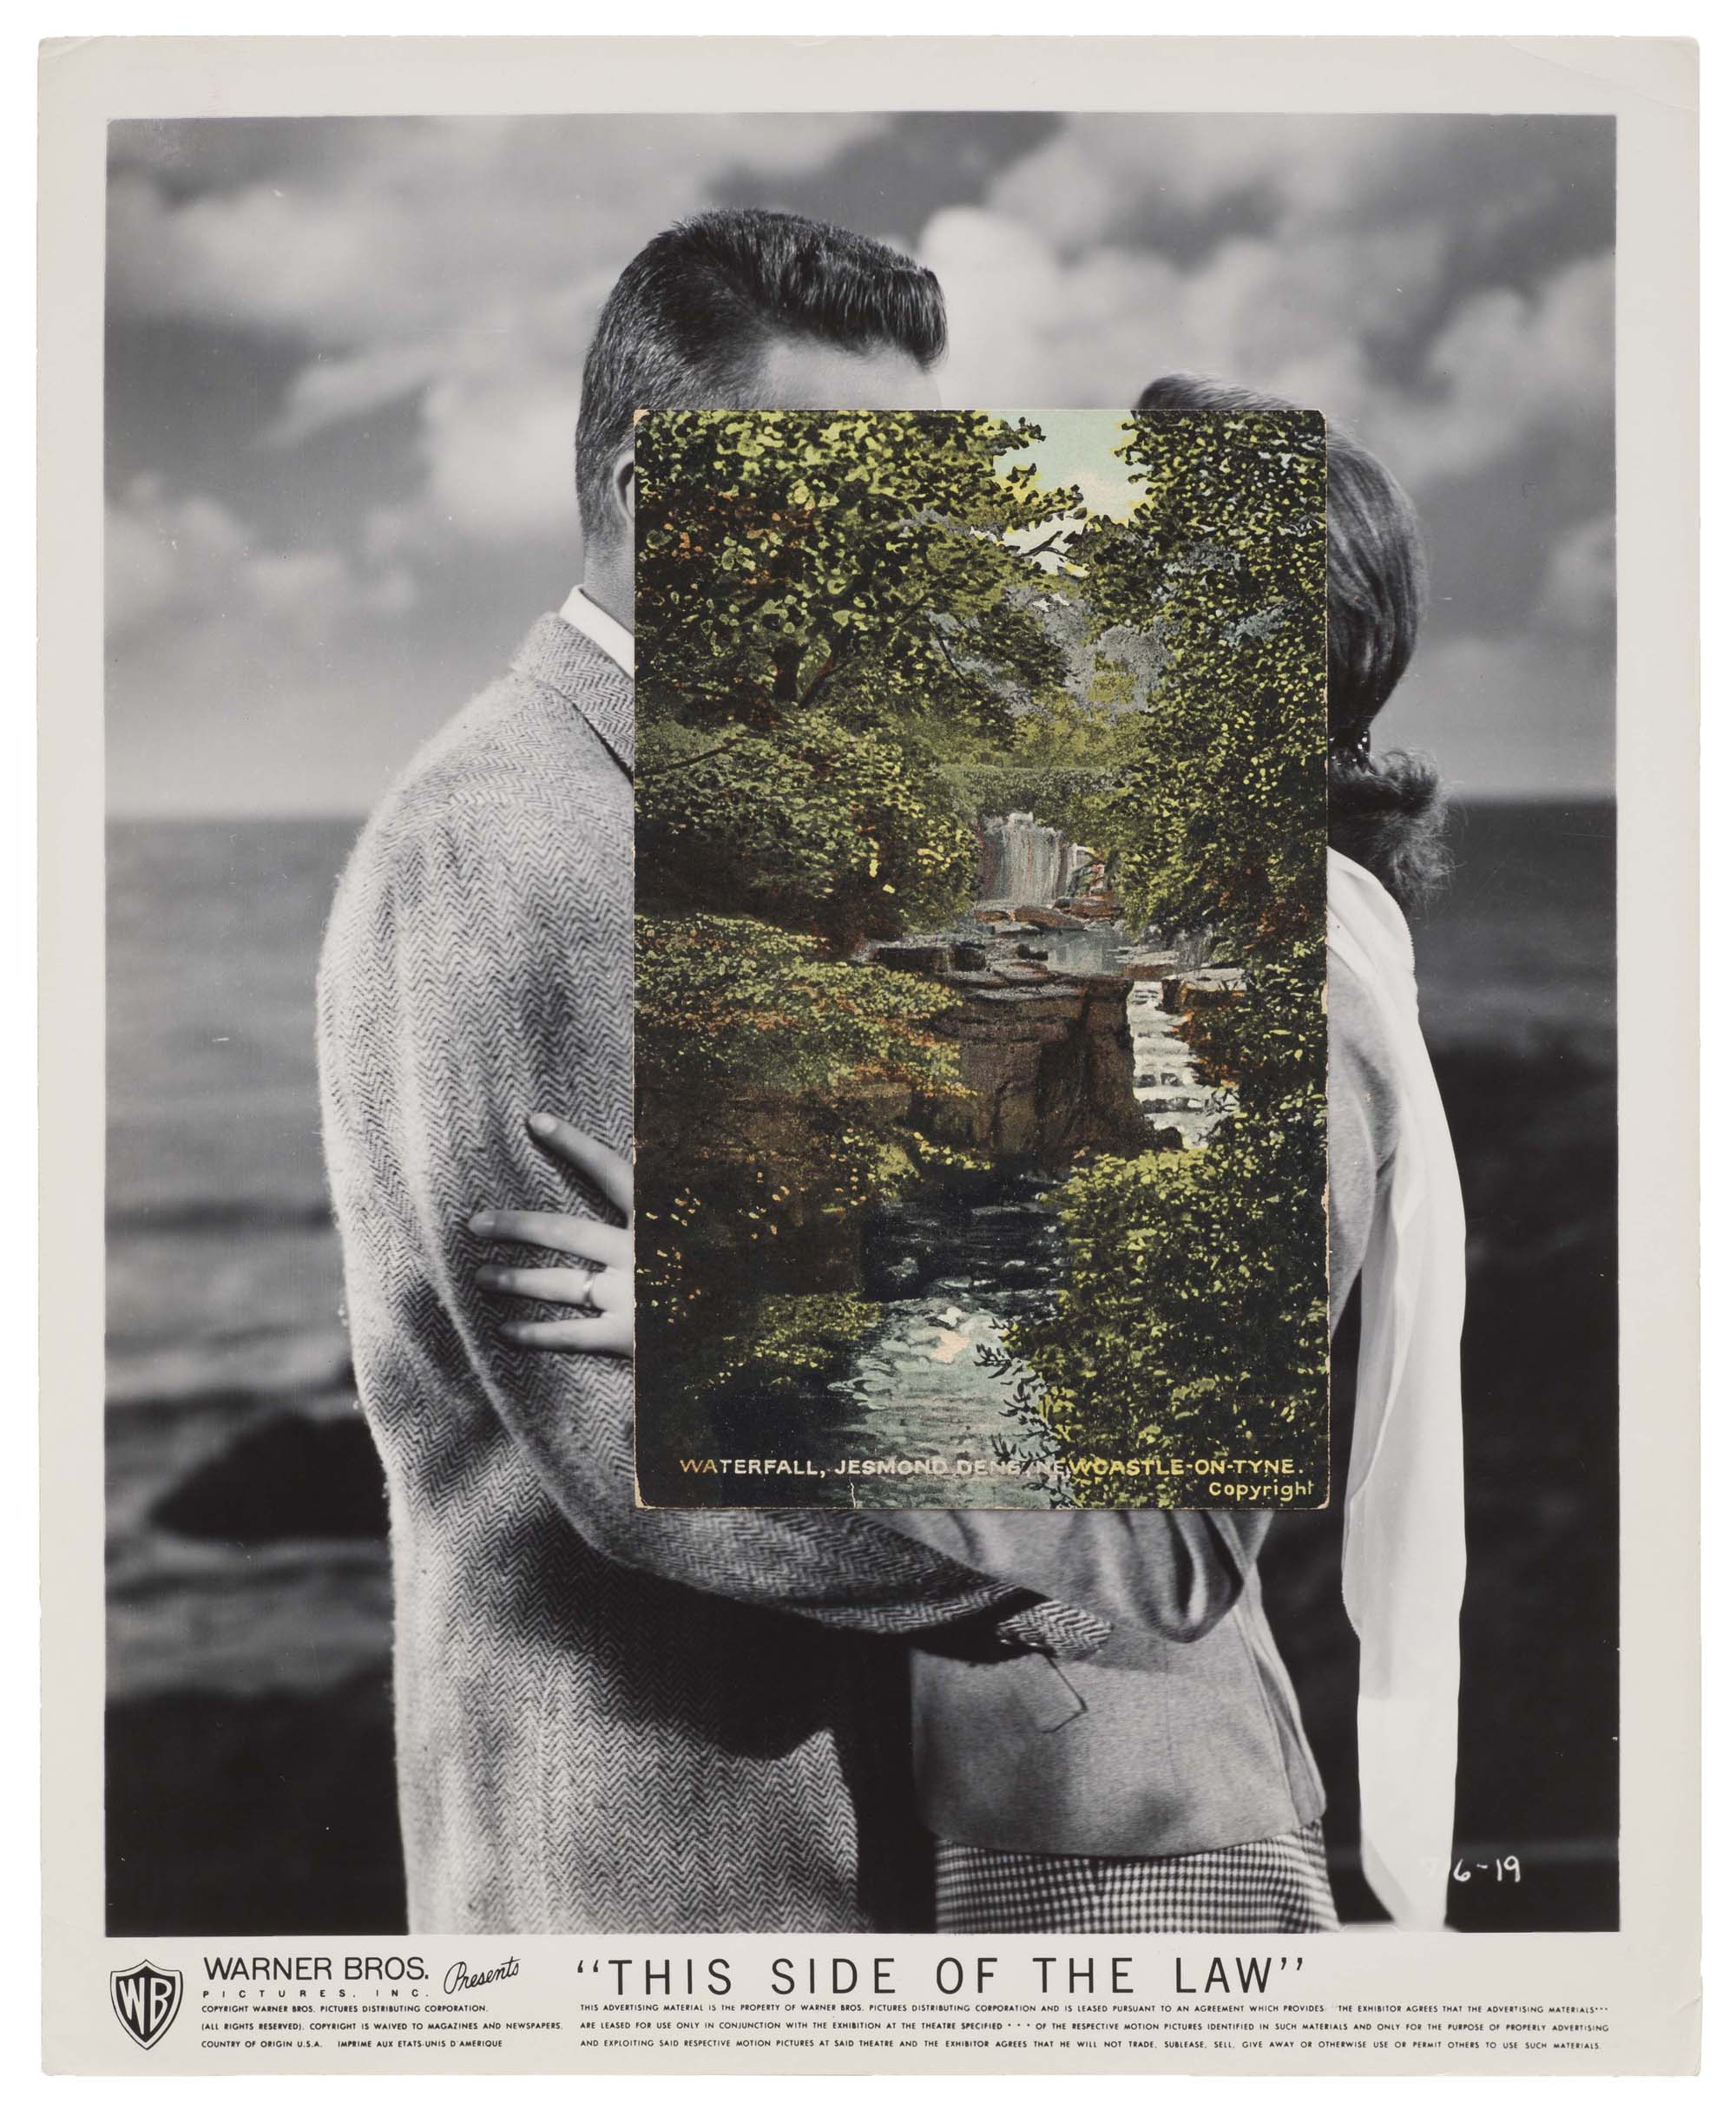 an old movie photo of a couple embracing with a colourised landscape photo overlaid in the middle